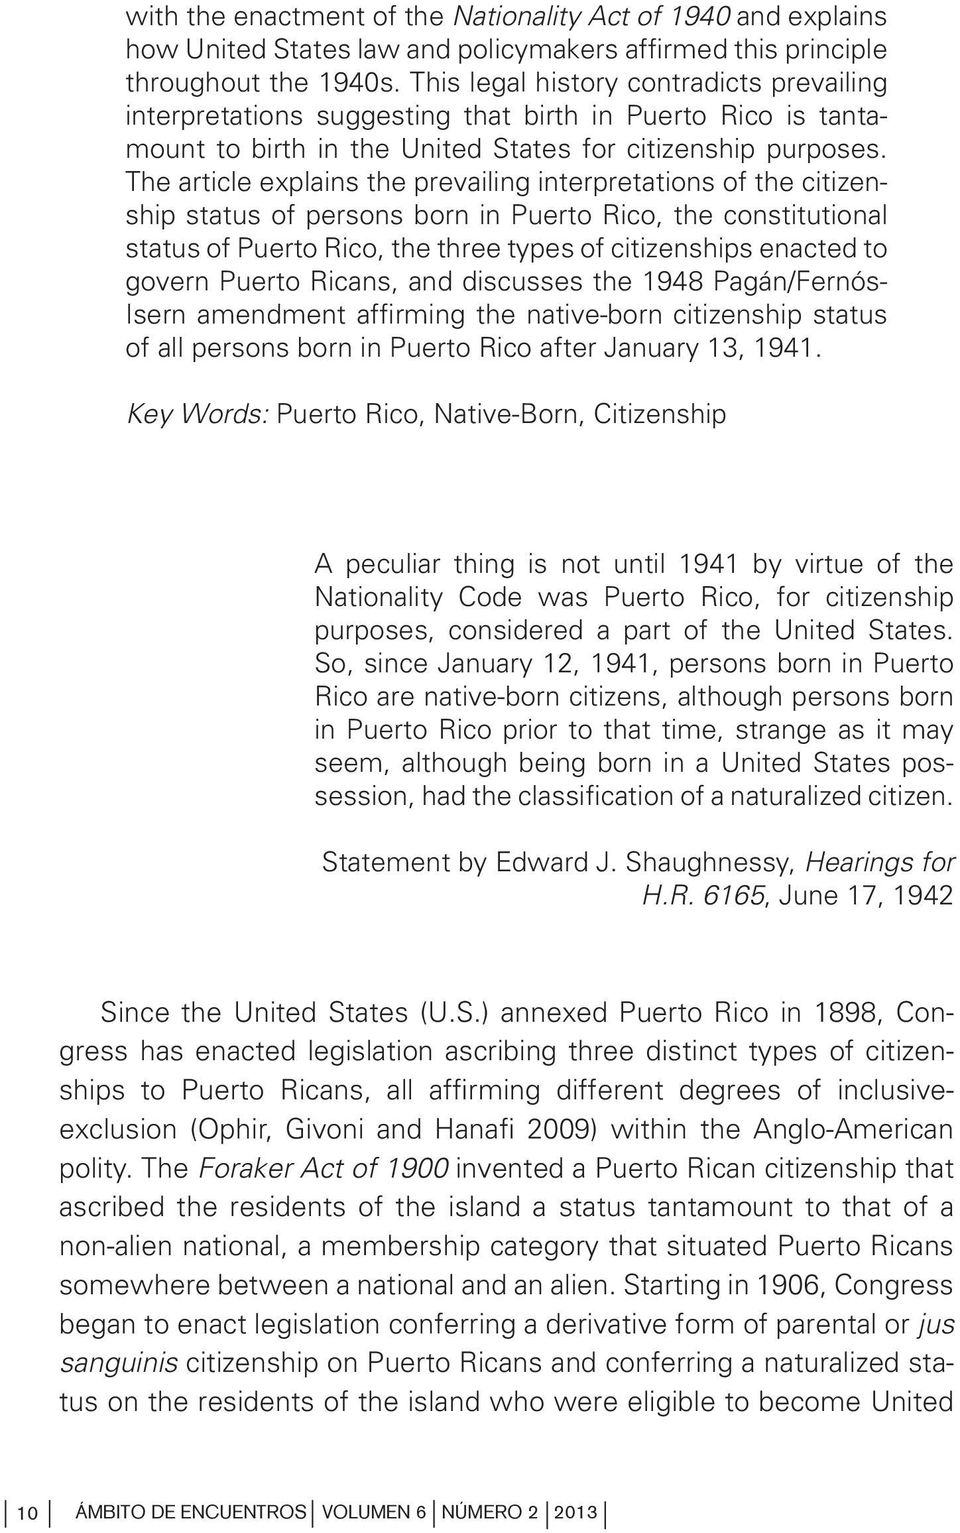 The article explains the prevailing interpretations of the citizenship status of persons born in Puerto Rico, the constitutional status of Puerto Rico, the three types of citizenships enacted to